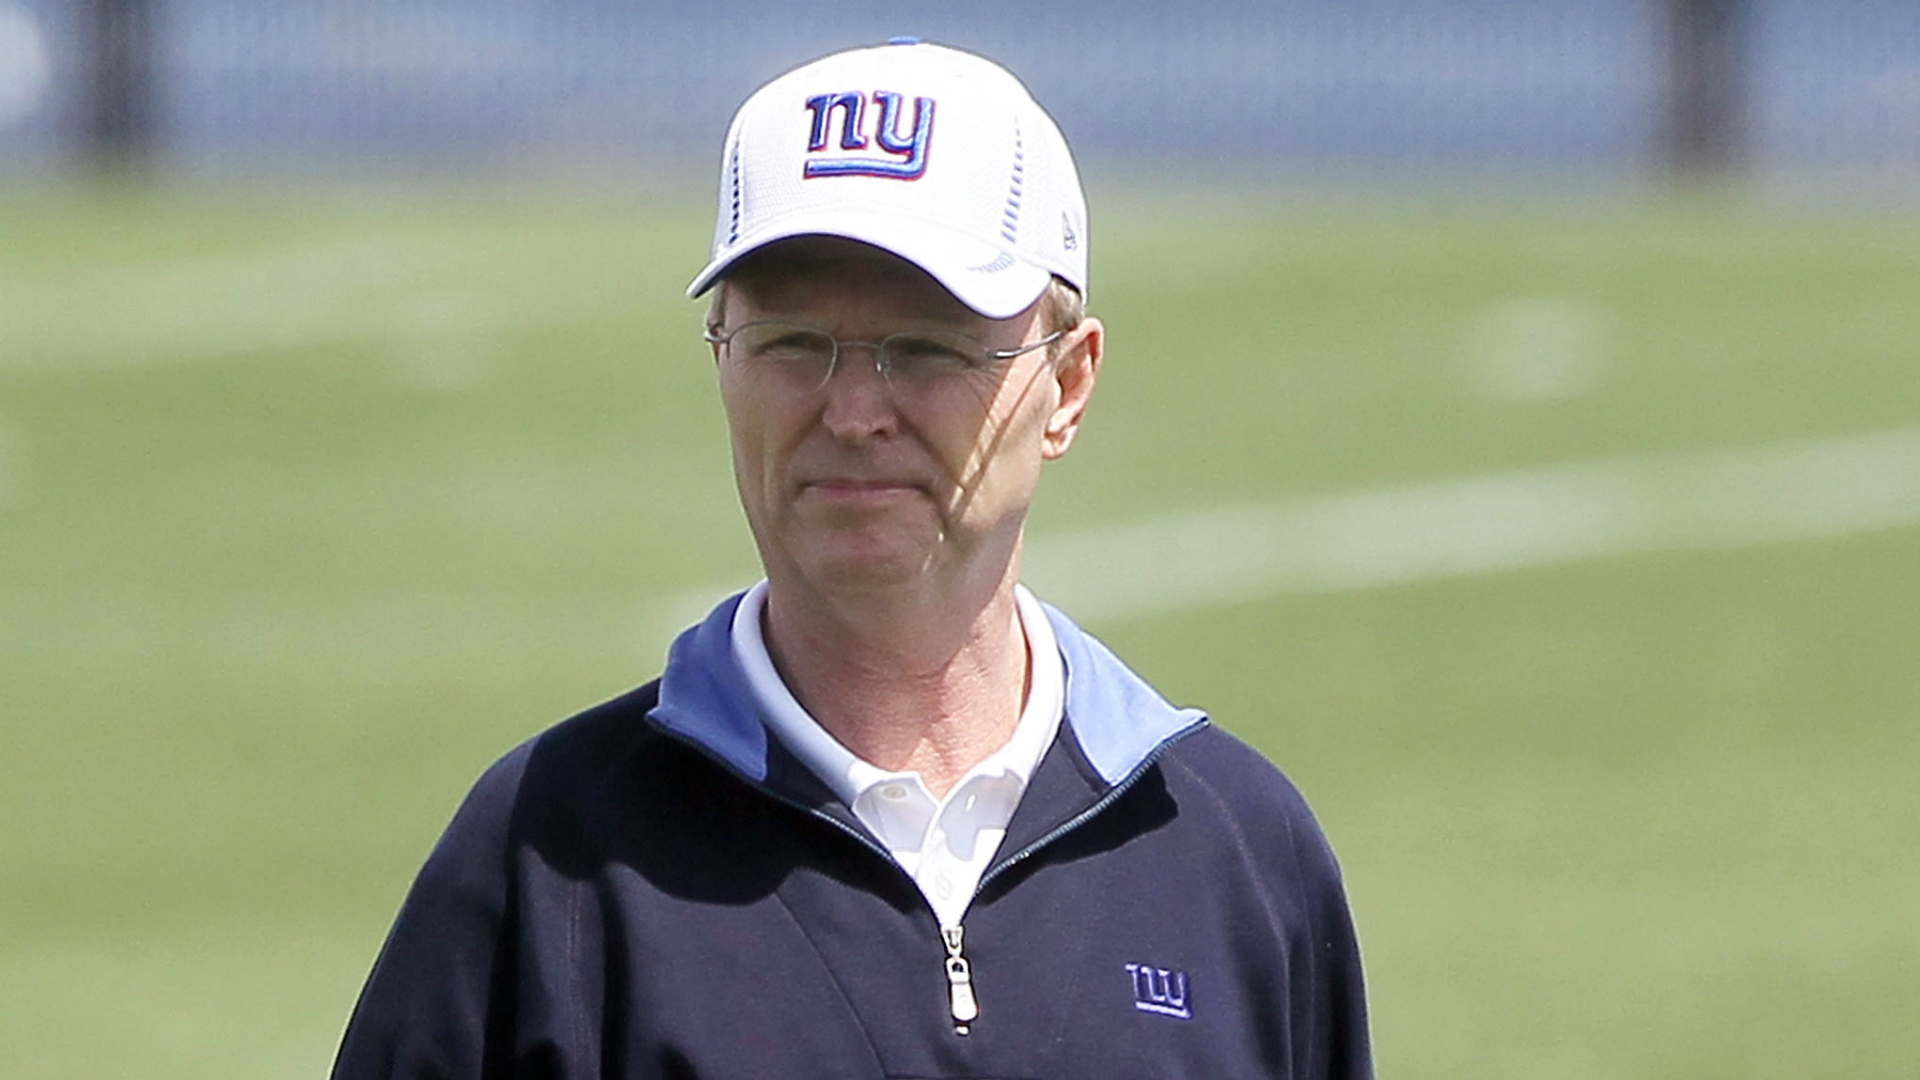 John Mara's swift decision gives Giants advantage in coach, GM searches